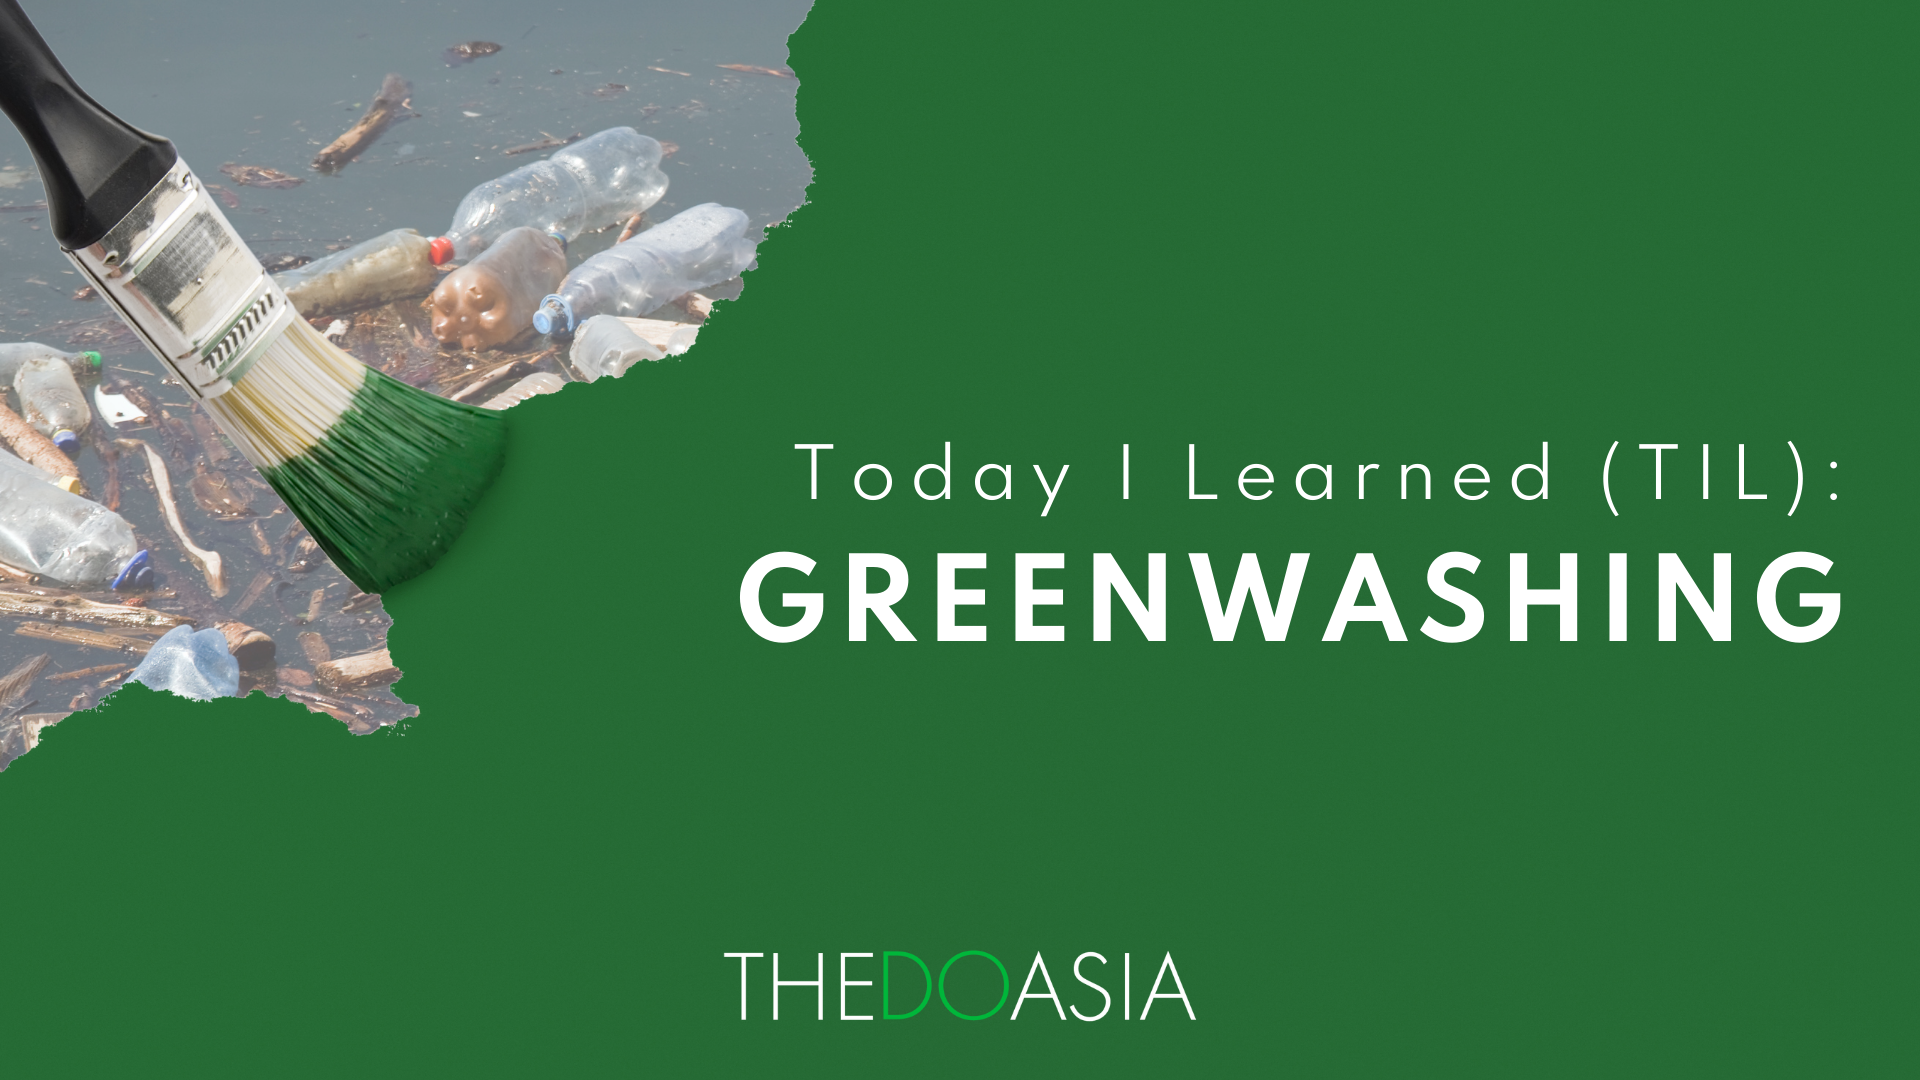 Today I Learned Greenwashing